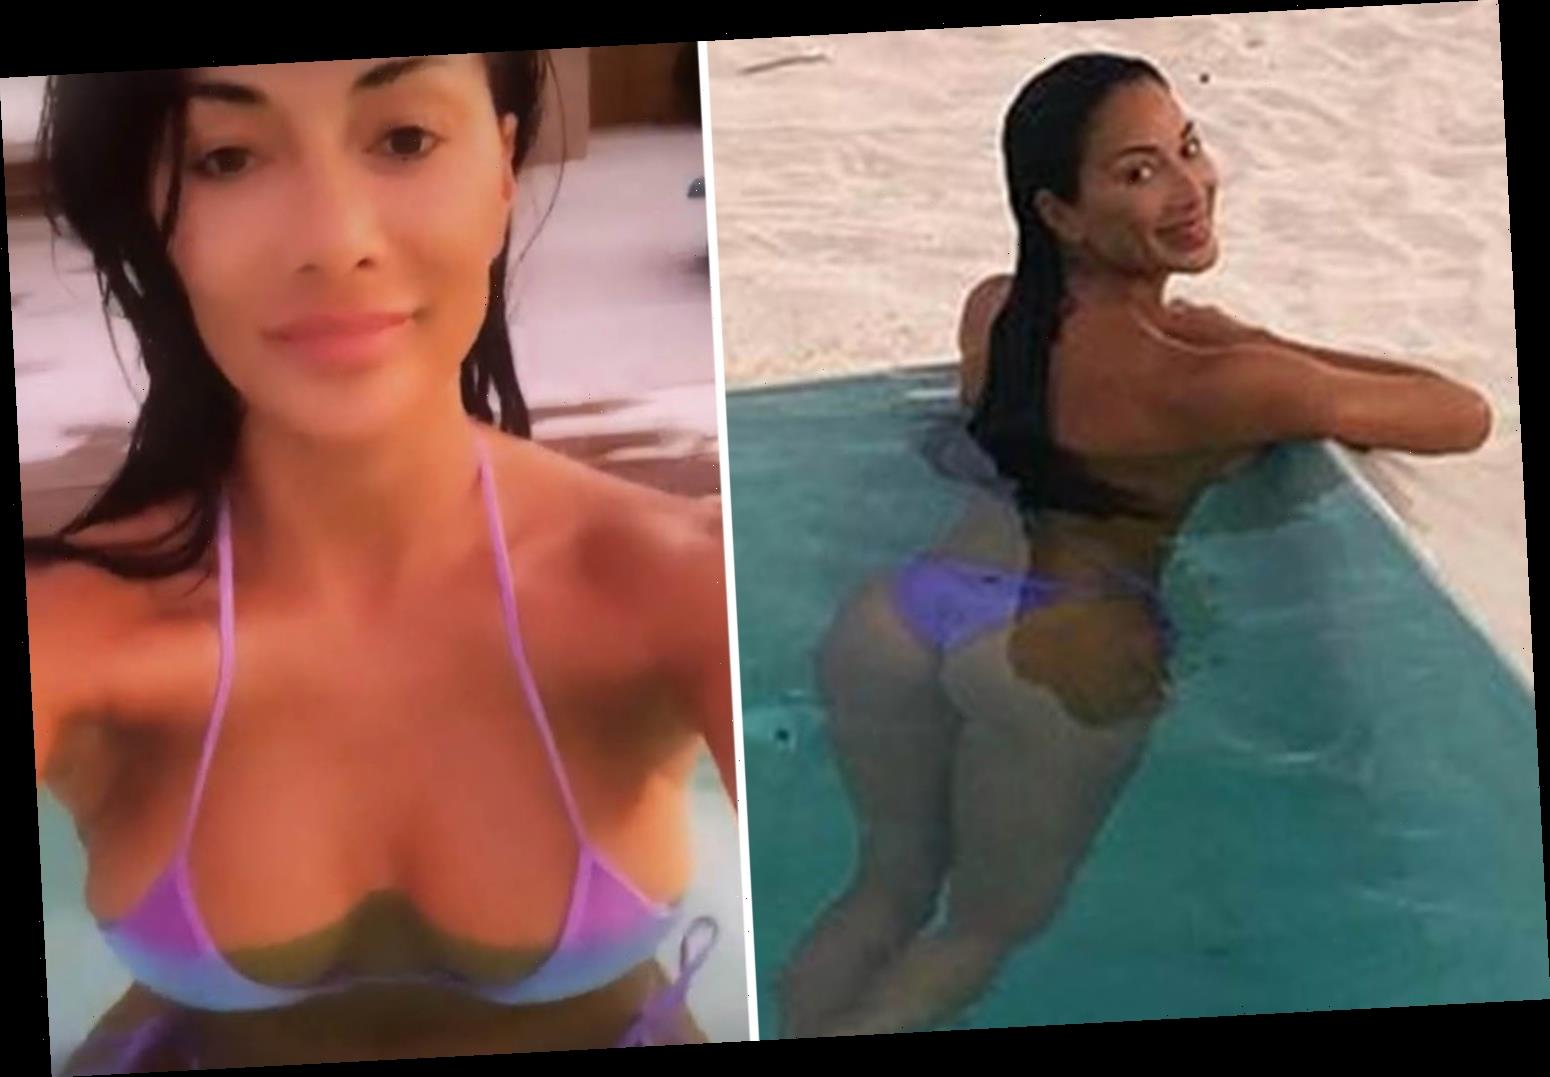 Nicole Scherzinger, 42, displays her hourglass curves in a barely there bikini while on Turks and Caicos getaway